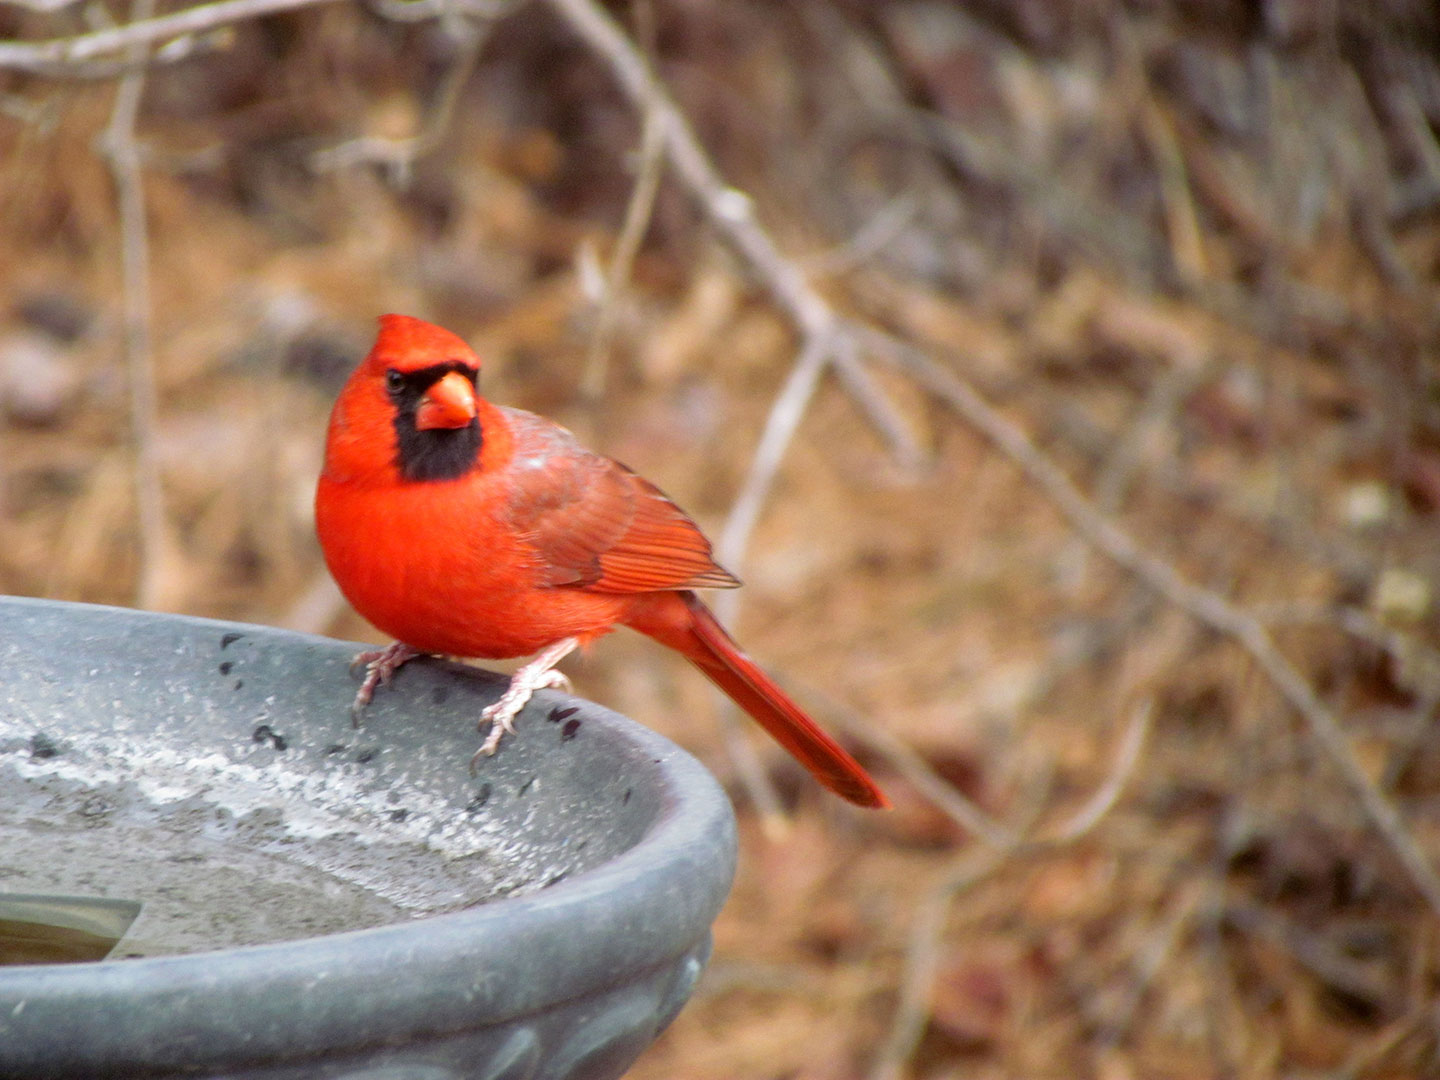 A Cardinal on the edge of a bird bath